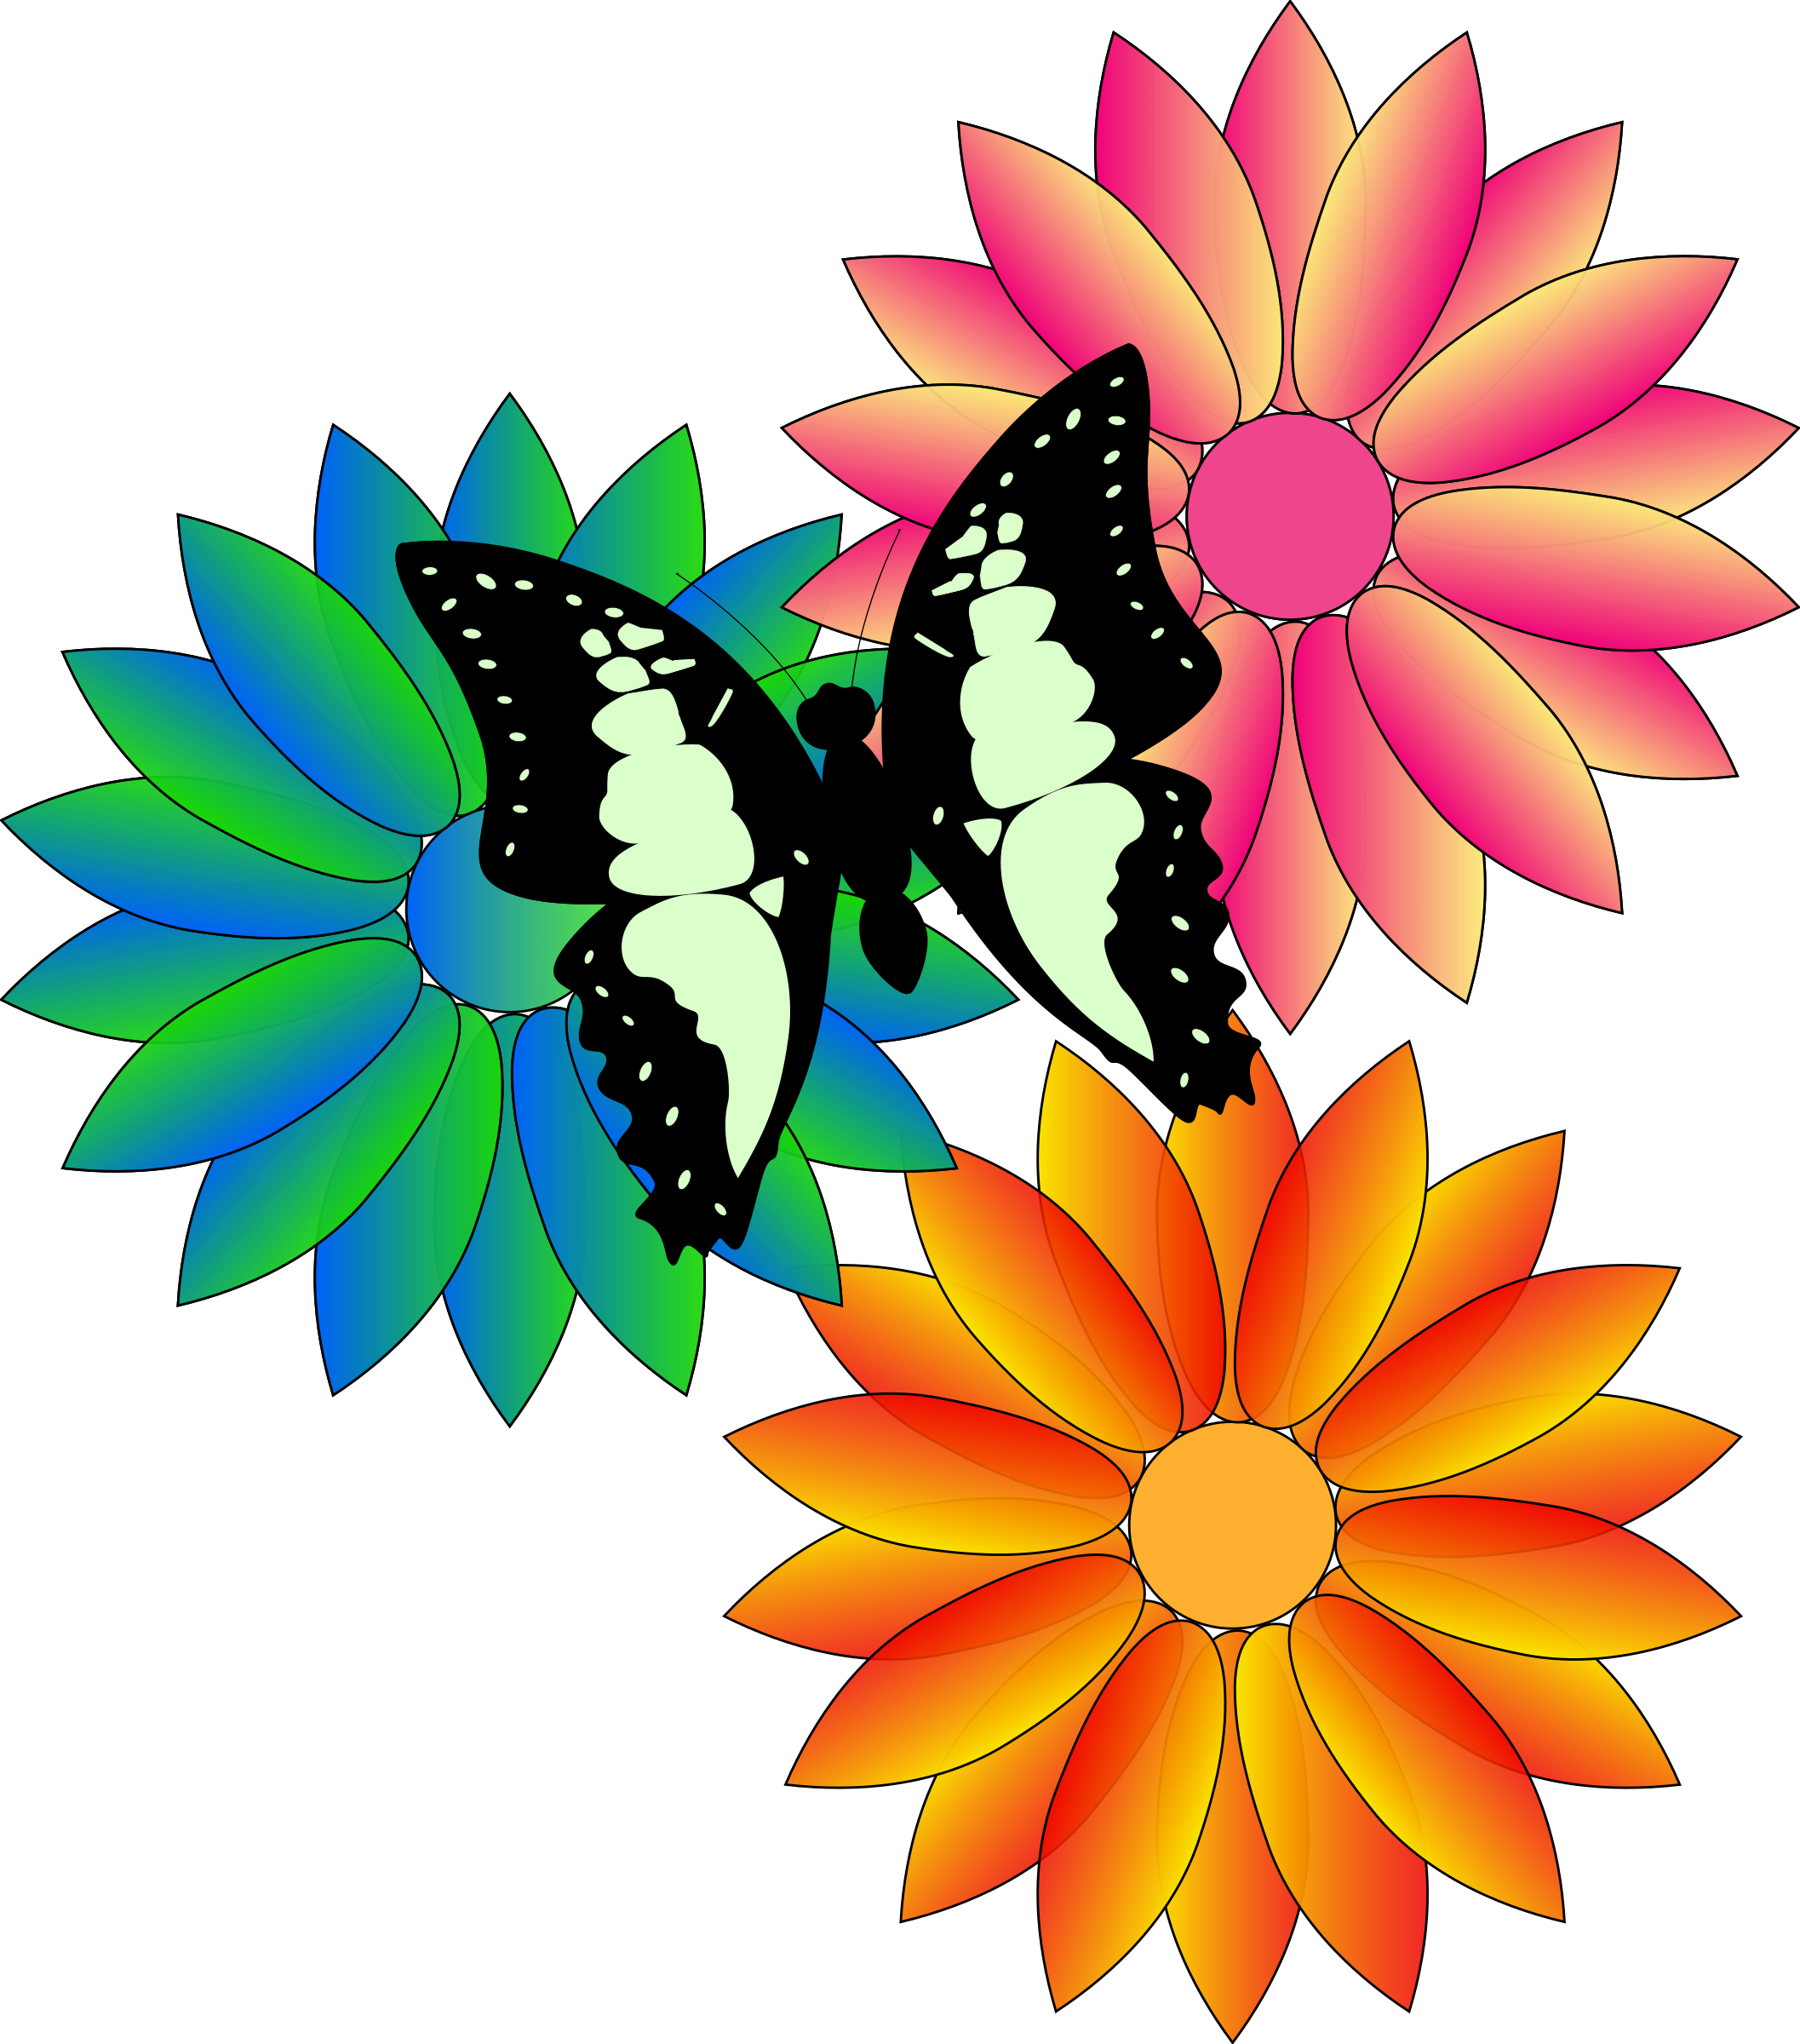 May flowers clip art clipart images gallery for free.